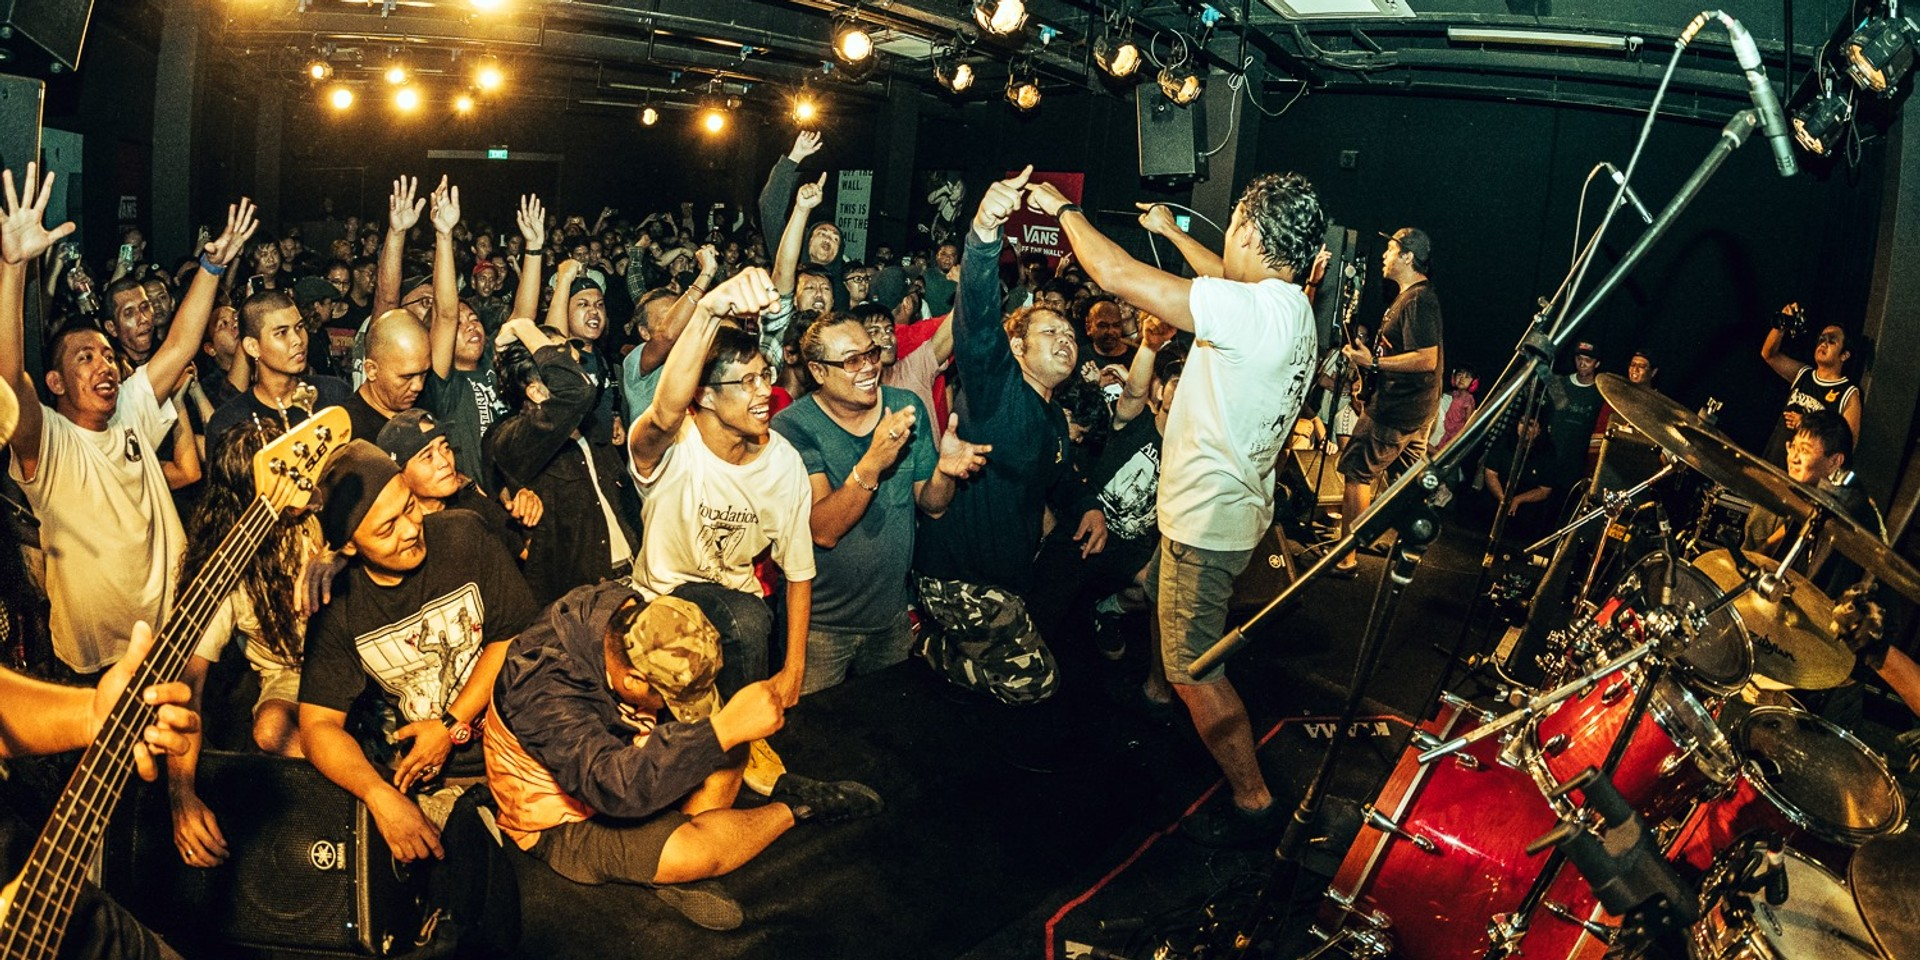 Singapore tightens restrictions on live concerts and events amid COVID-19 resurgence